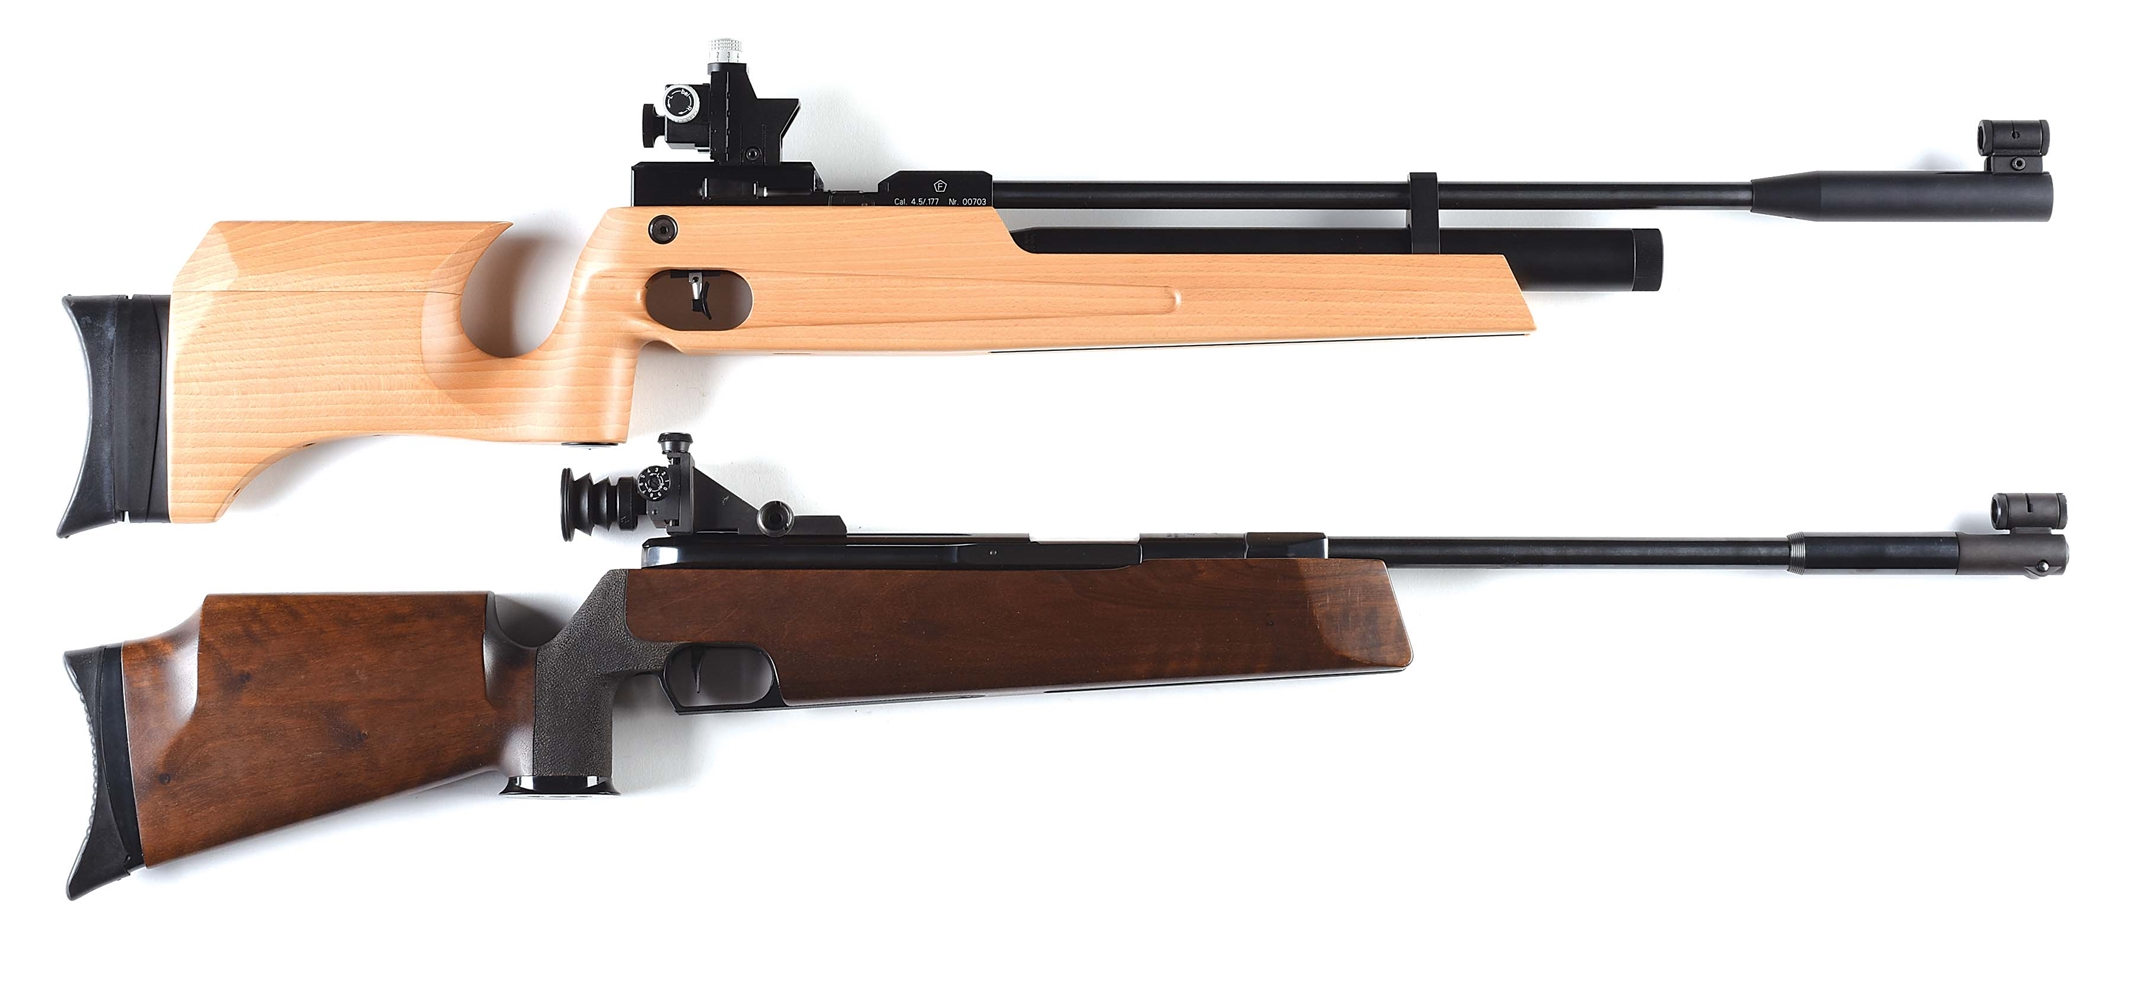 Lot of 2: NIB Hammerli AR-50 Air Rifle With Box and Accessories and Daisy Imported Feinwerkbau 300S Air Rifle.